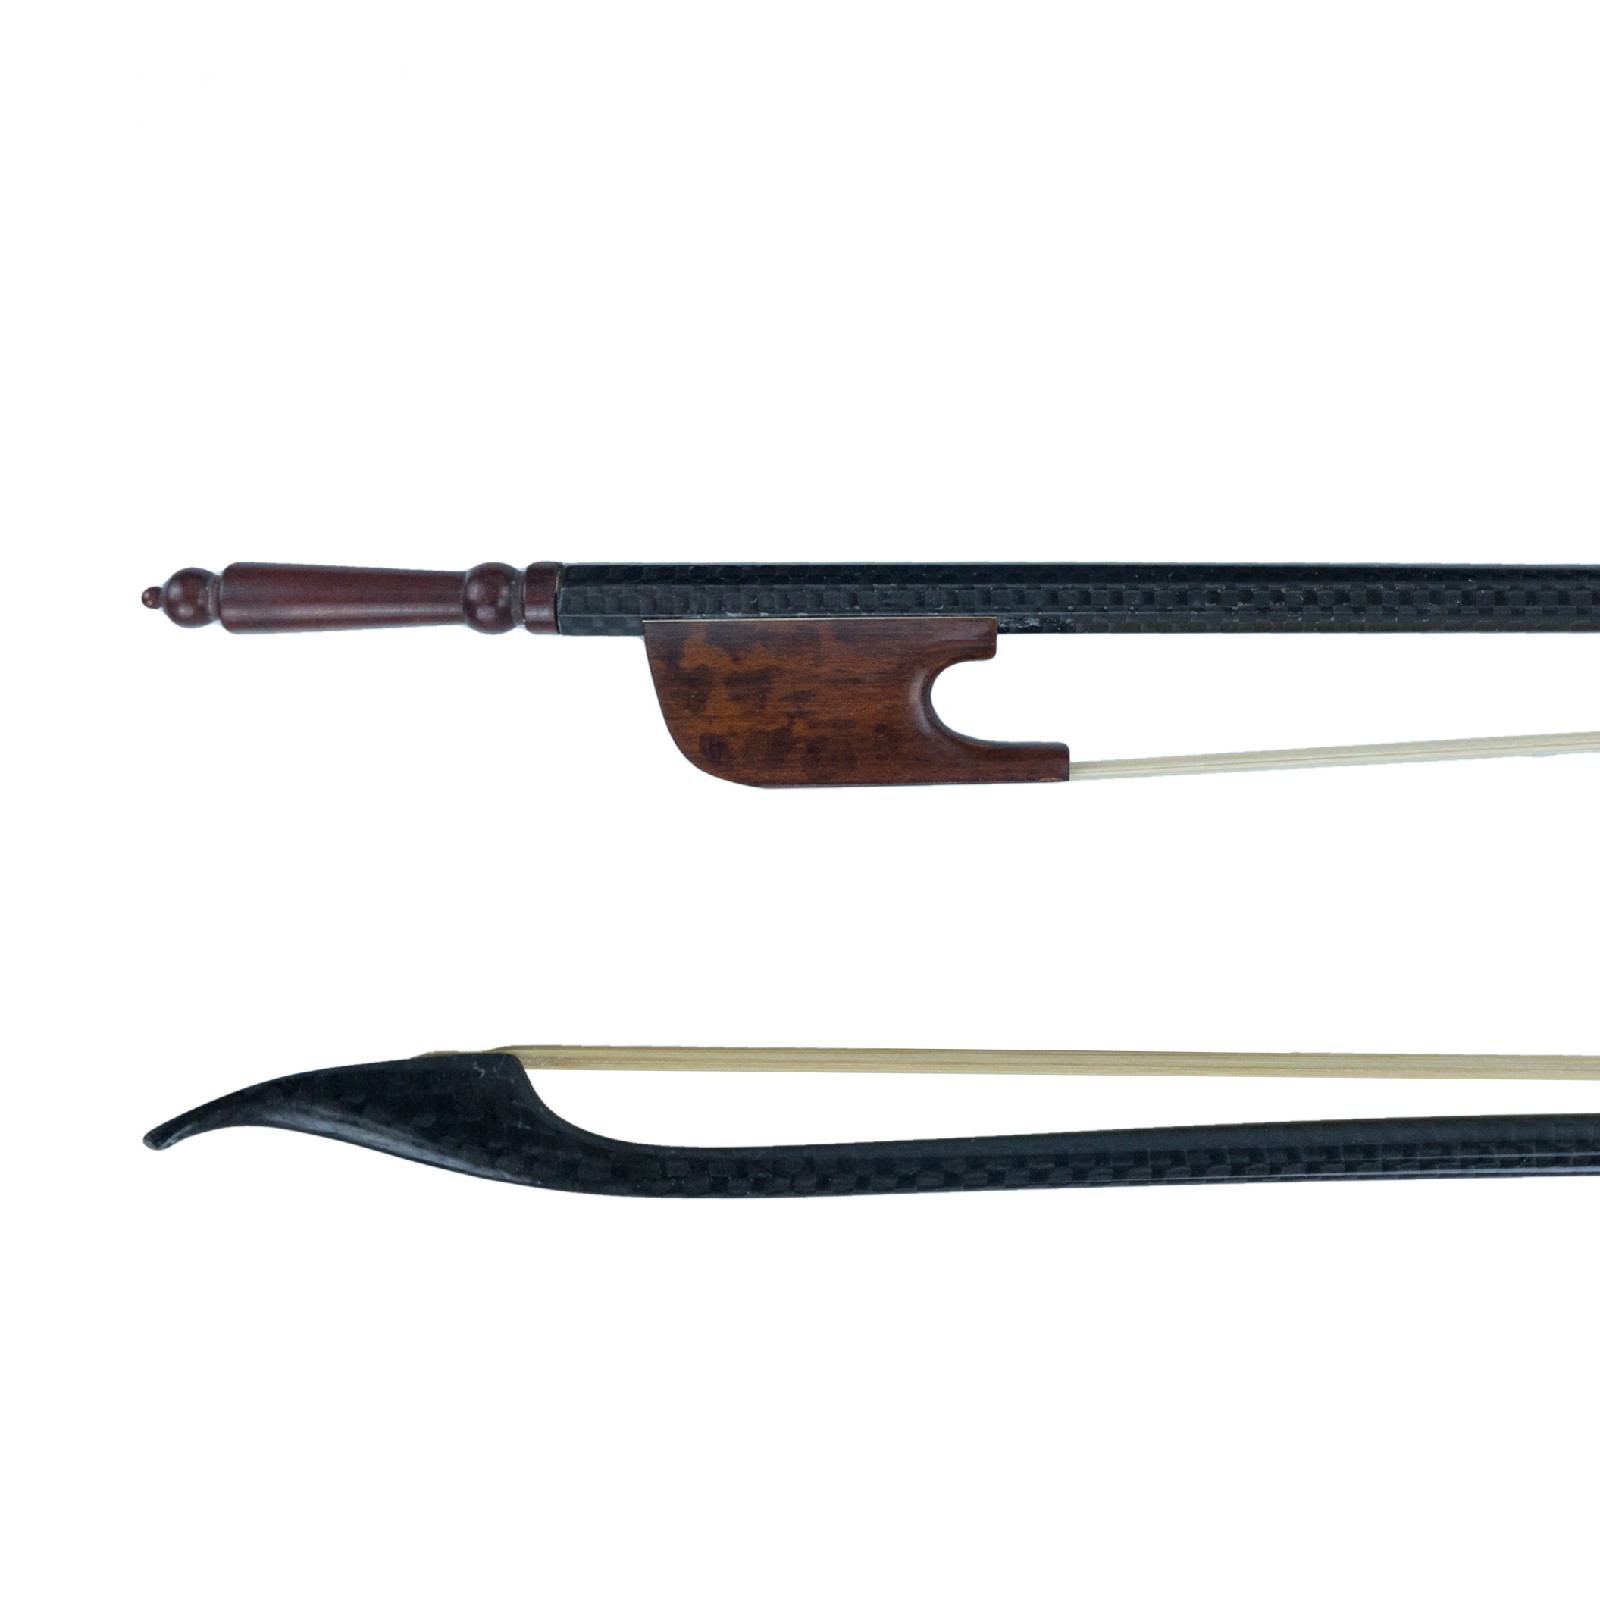 4/4 Carbon Fiber Bow Baroque Bow Real Mongolia Horse Hair Snake Wood Frog Violin Accessories-in Violin Parts & Accessories from Sports & Entertainment    1